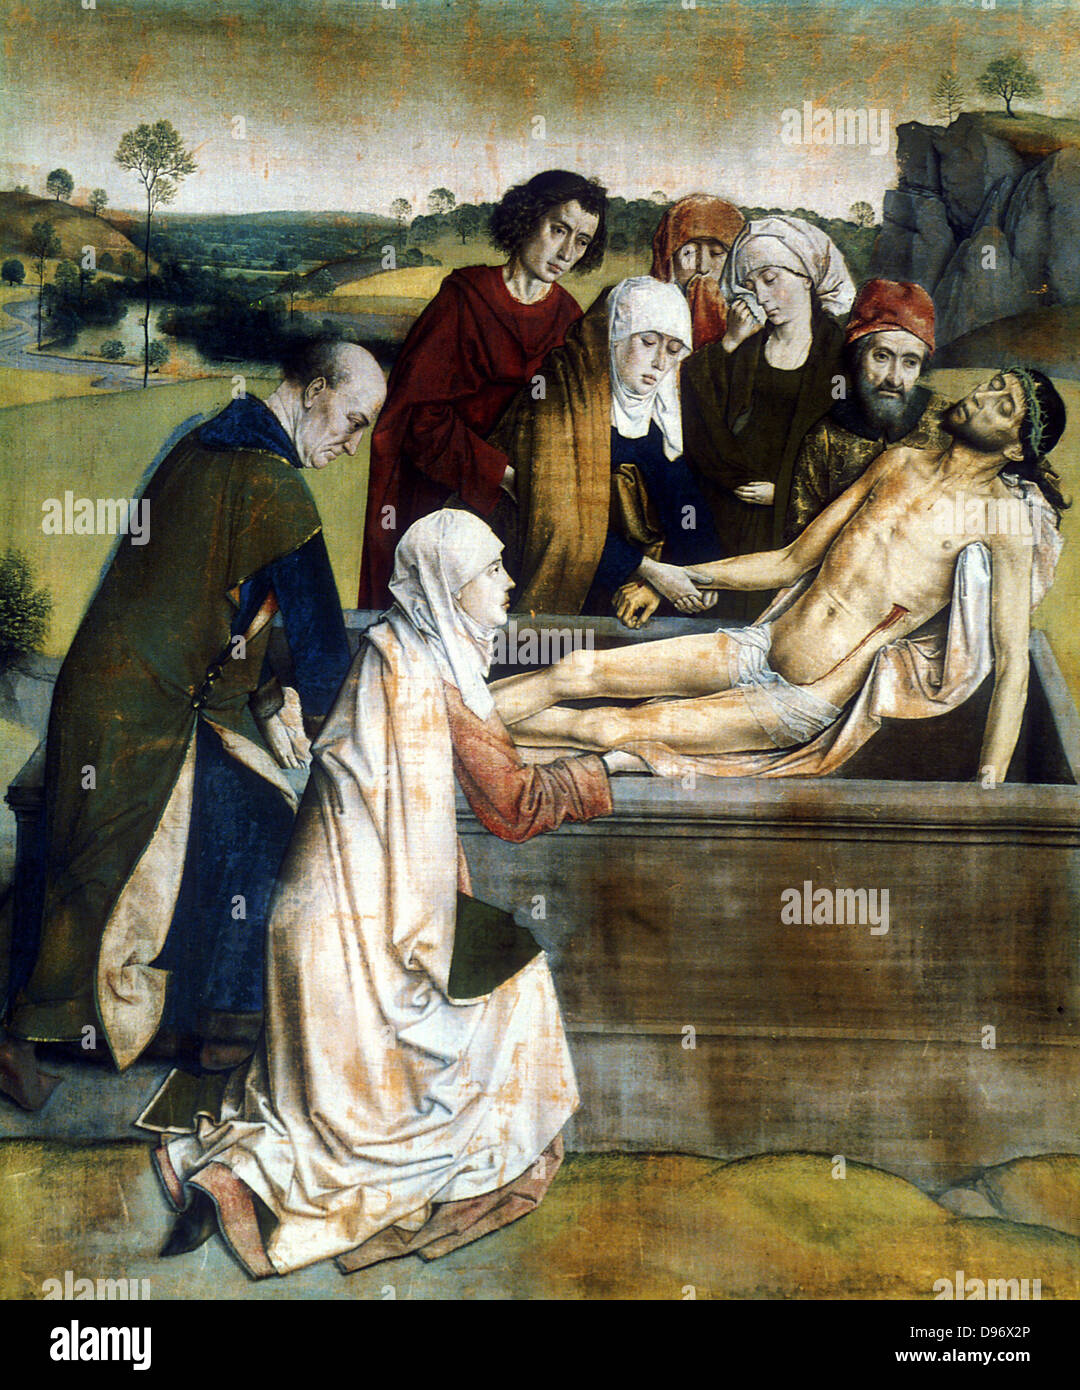 The Entombment'. Dierick or Dirk Bouts (c1415-1475) Dutch painter. - Stock Image